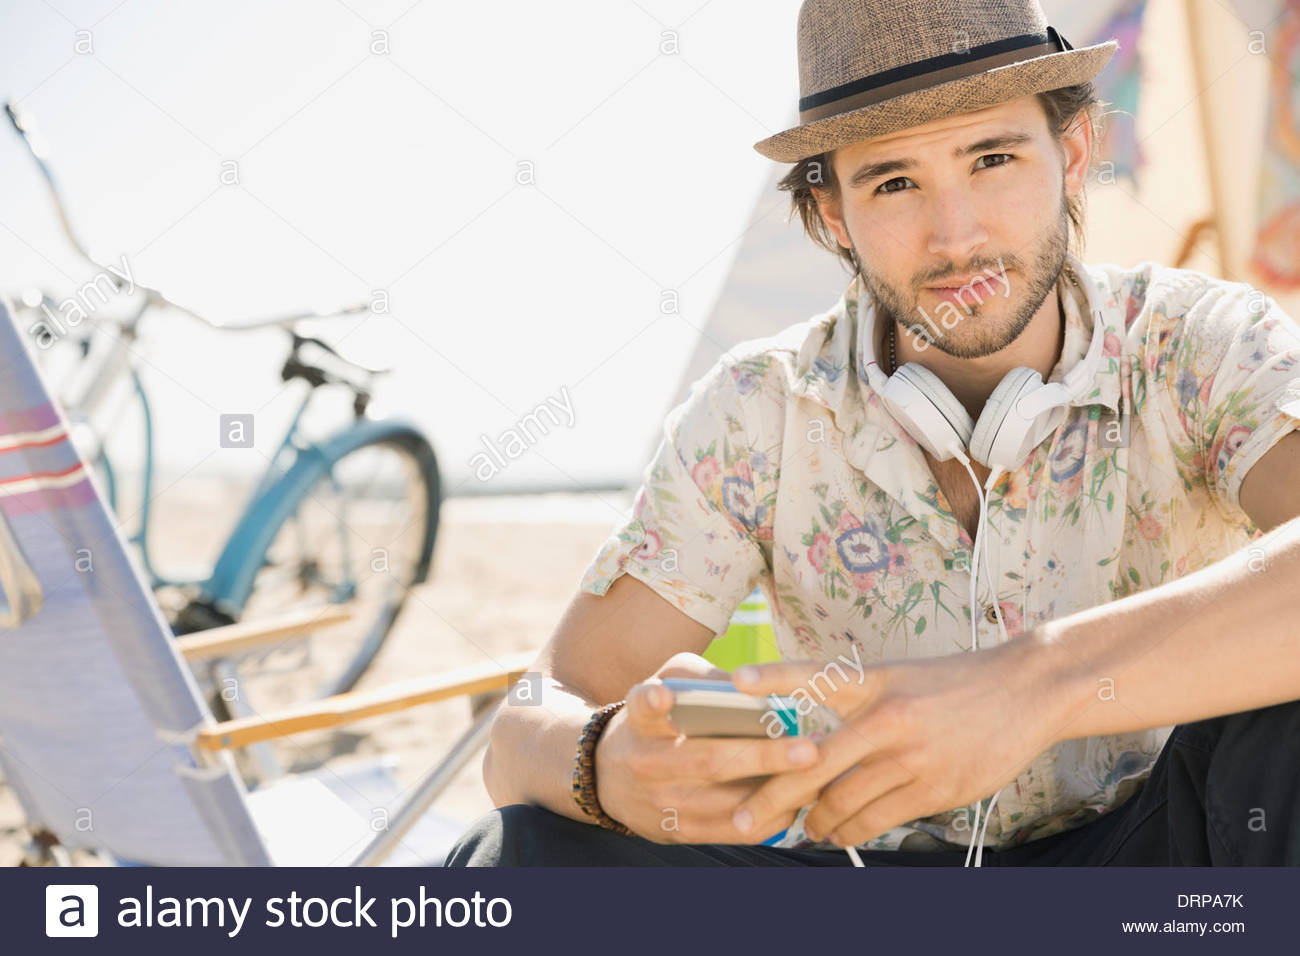 Portrait of man with smart phone on beach - Stock Image